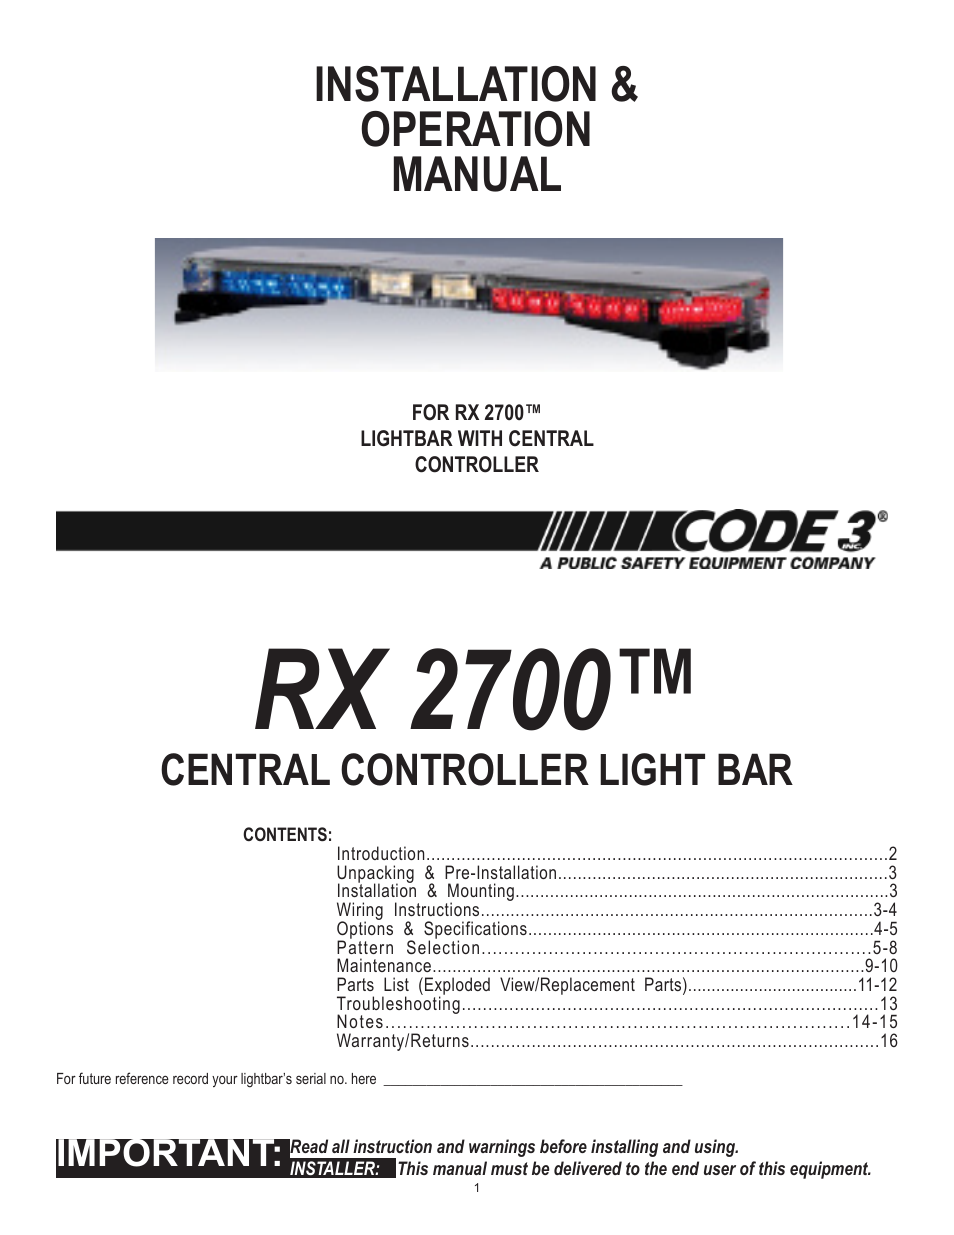 code 3 rx 2700cc page1 code 3 arrowstik wiring diagram code wiring diagrams collection code 3 supervisor wiring diagram at mifinder.co